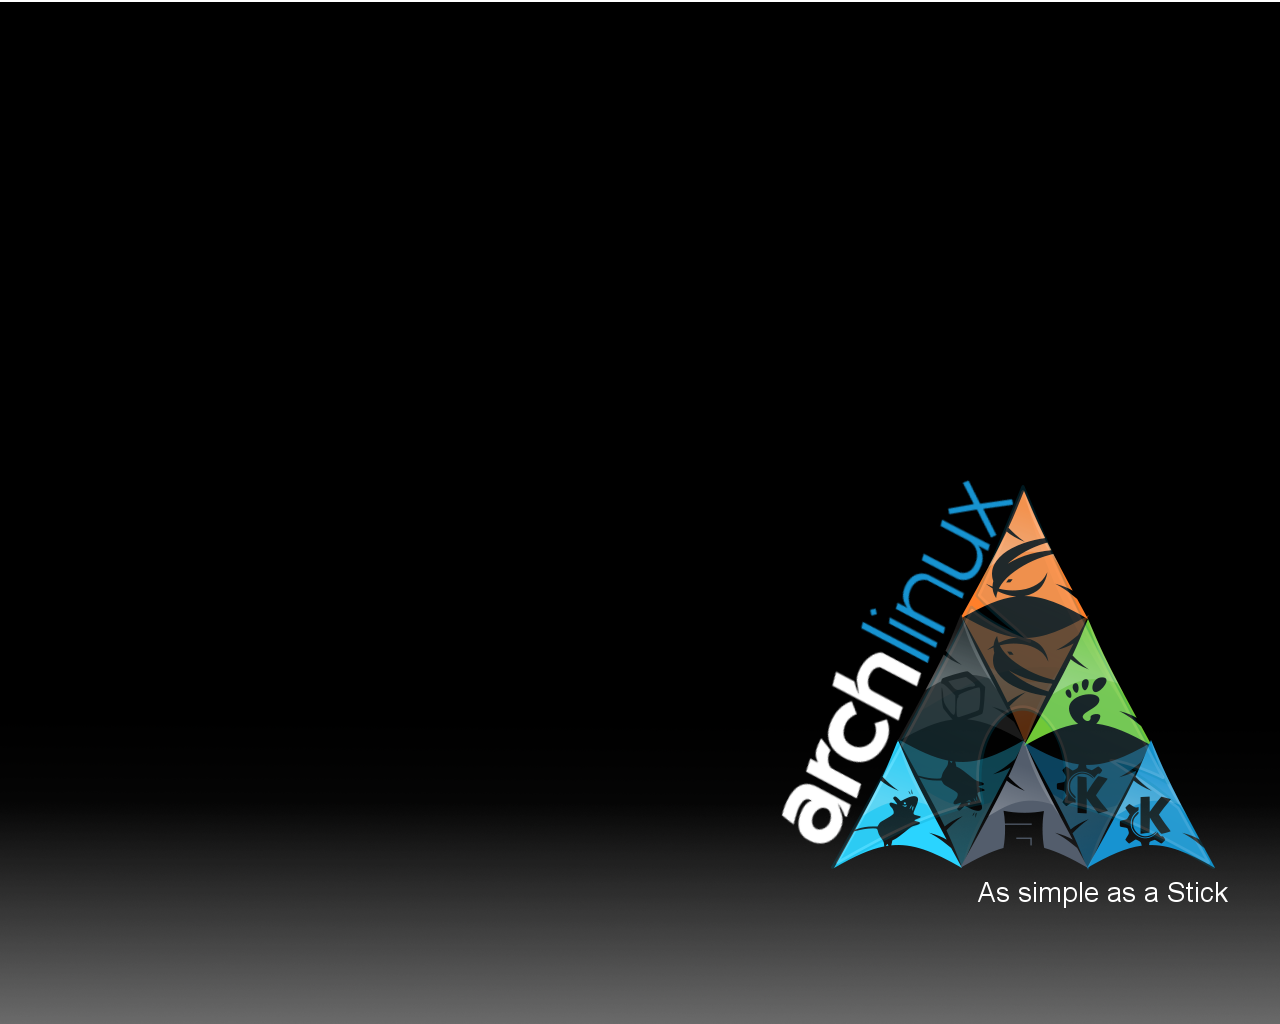 archlinux-wallpaper.png